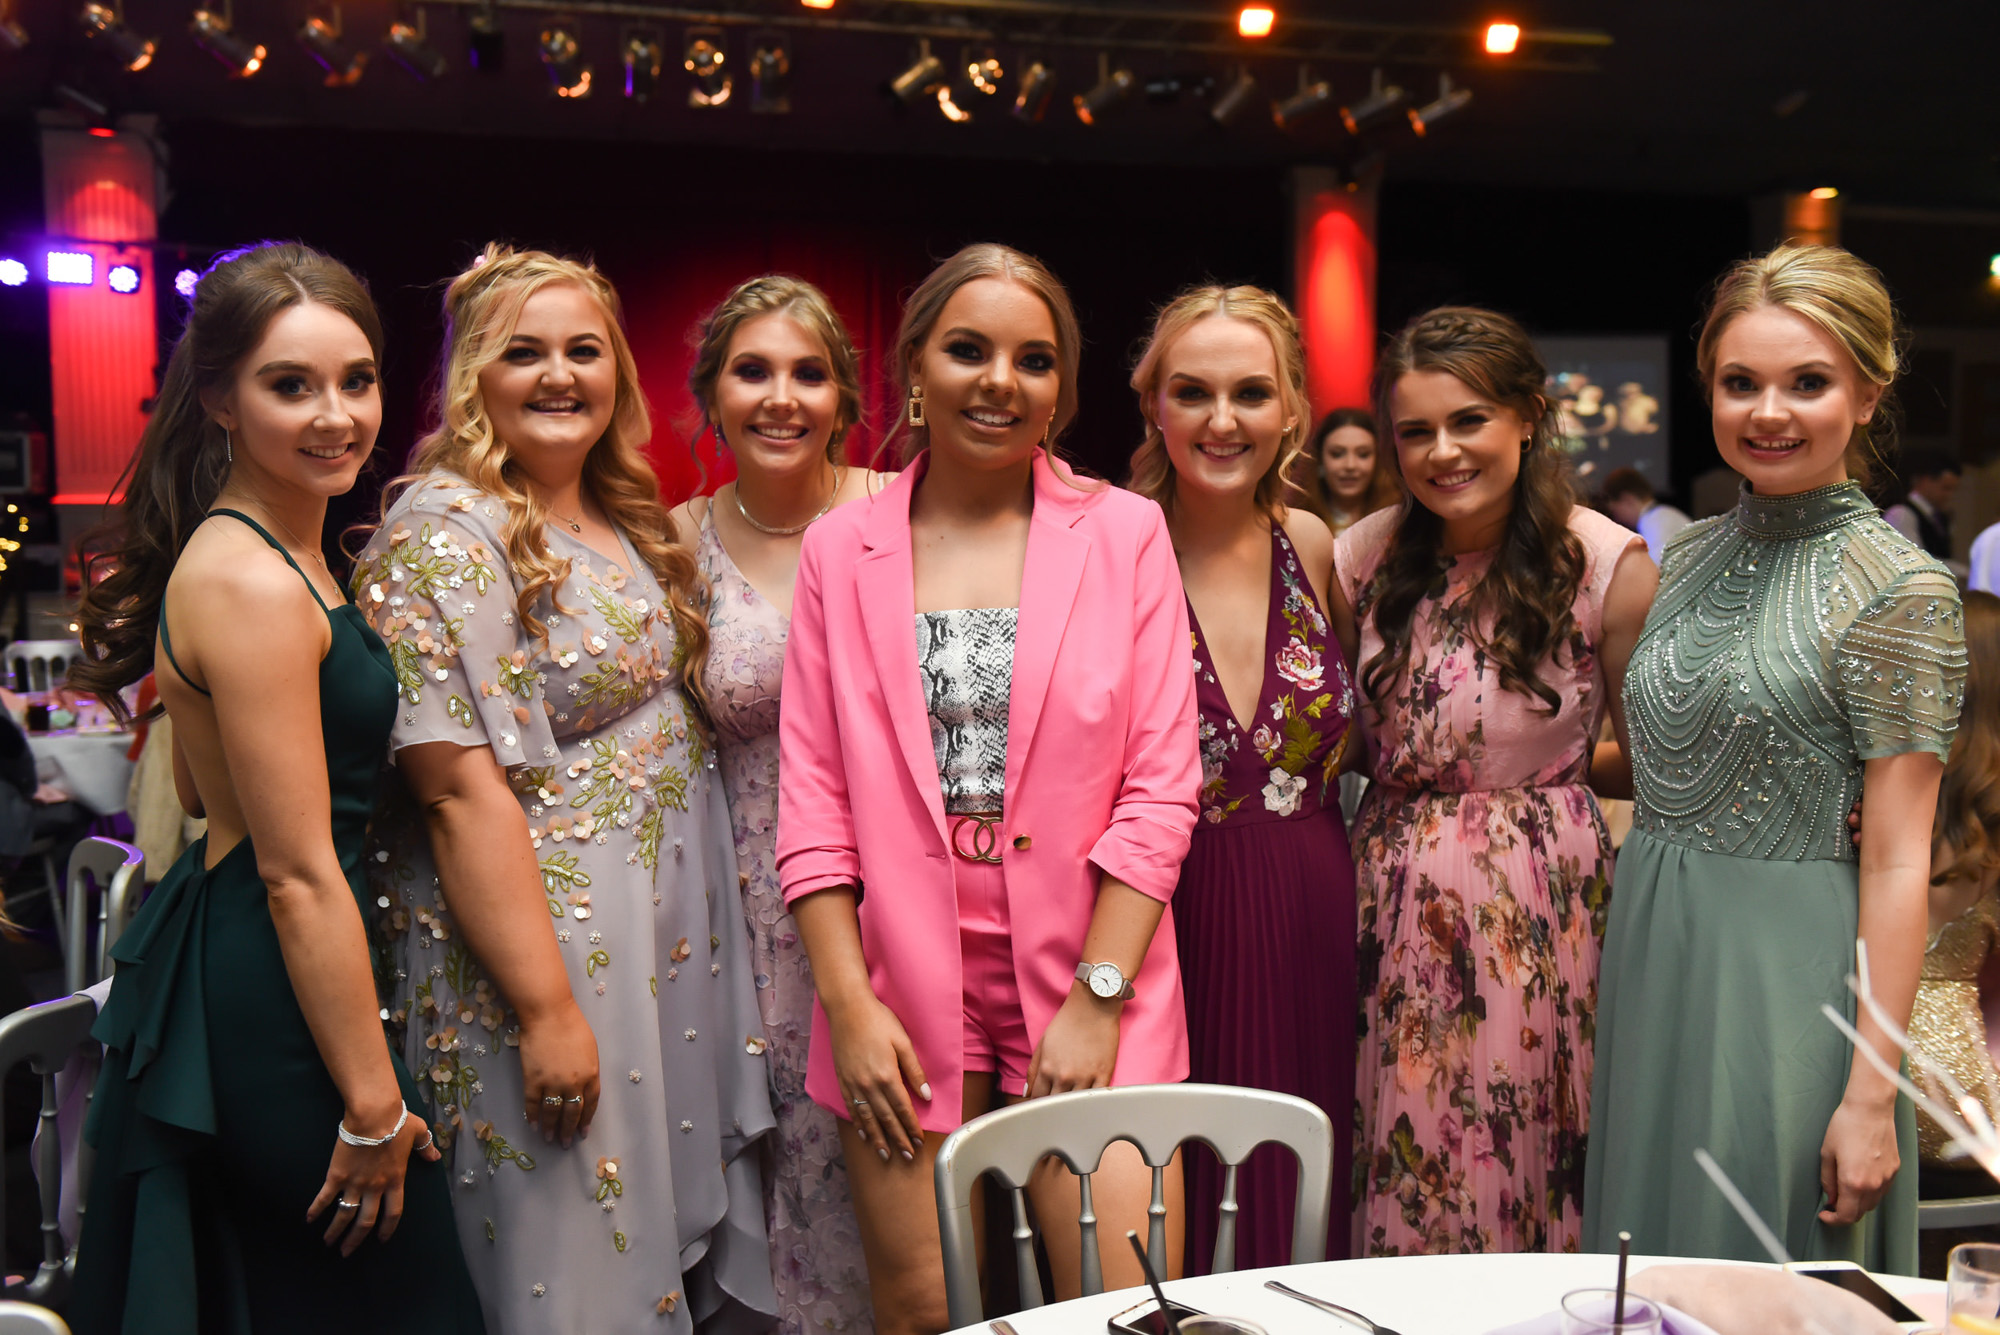 UCLAN_MT_BALL_2019_306.jpg